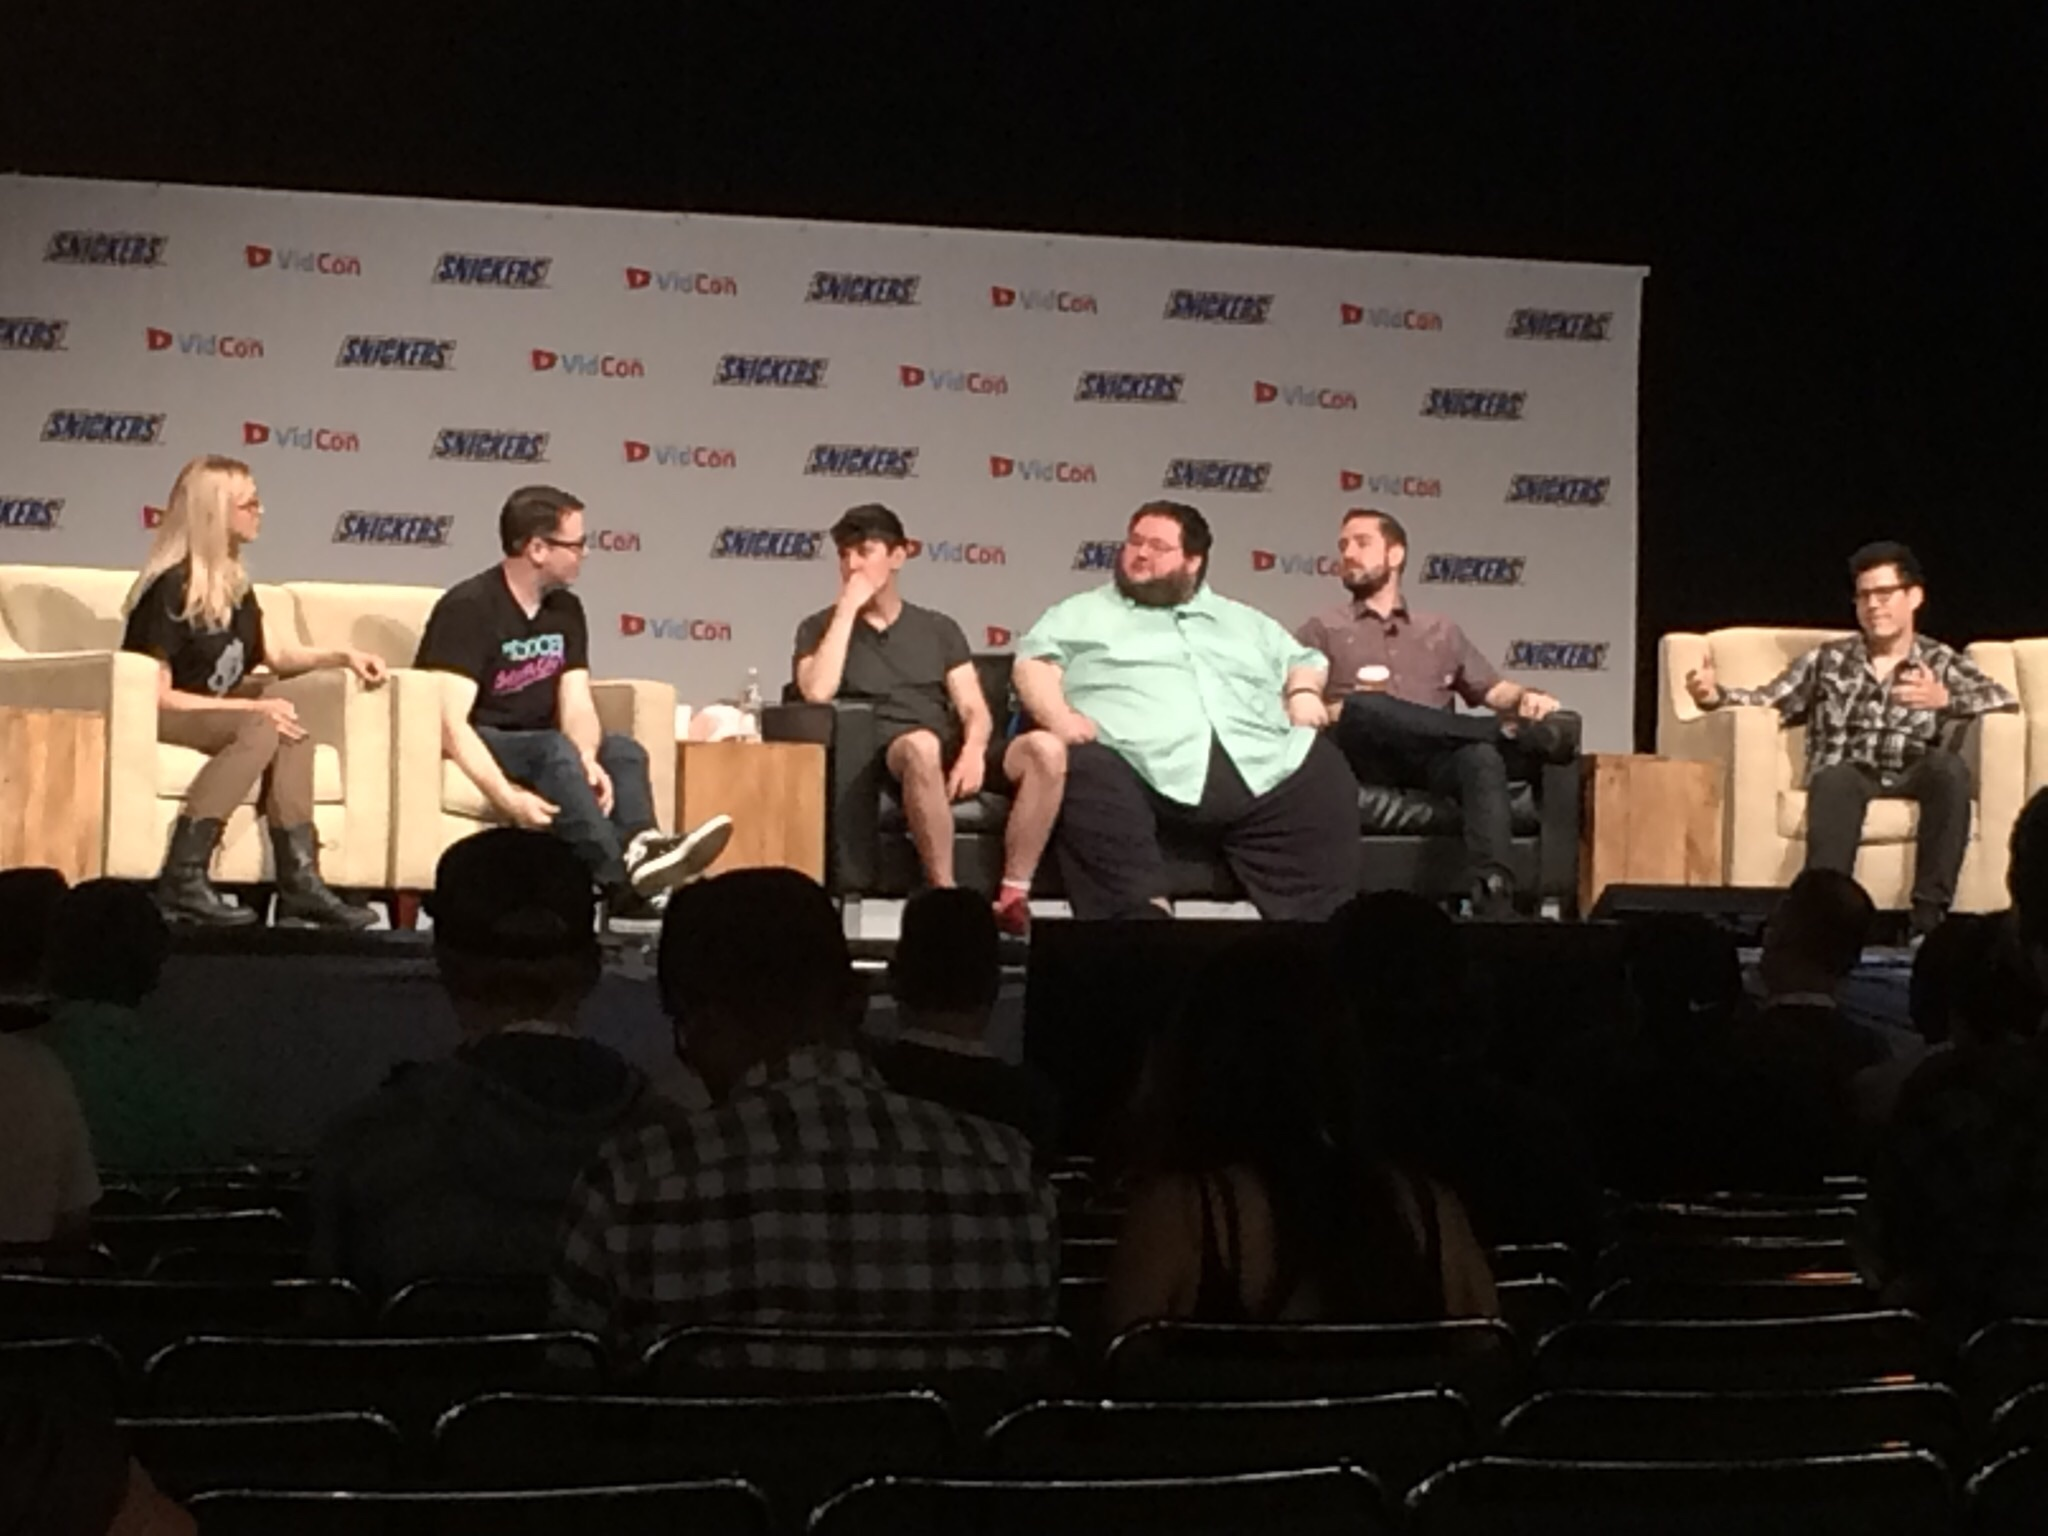 Vidcon 2016 Part Four Day 2 Shawn Belew He previously worked for inside gaming and as a producer for. vidcon 2016 part four day 2 shawn